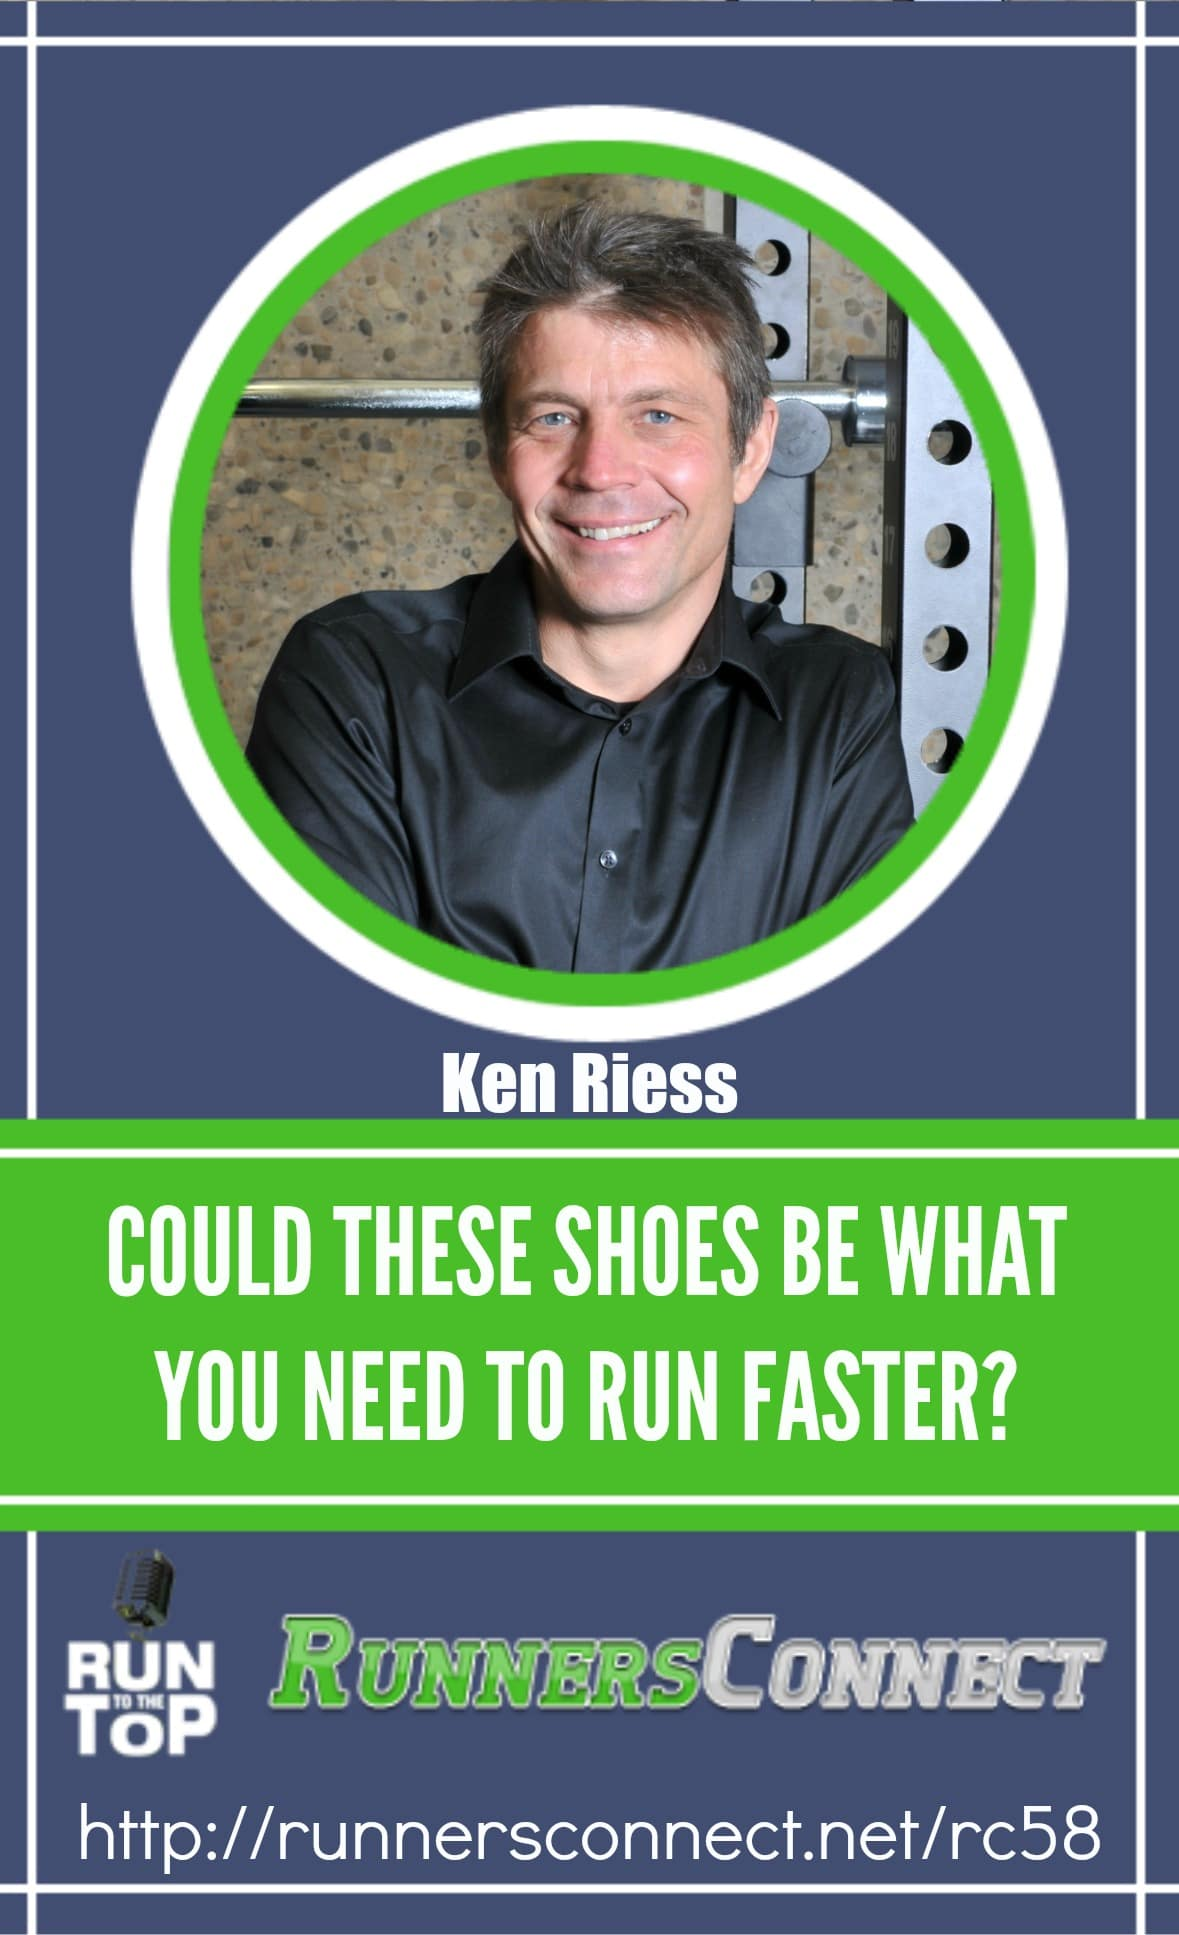 We interview scientist Ken Riess who completed a study on a shoe with mechanical springs inside, and found running efficiency improved significantly. If your running economy improves, you can run faster easier, worth a try? We think so!